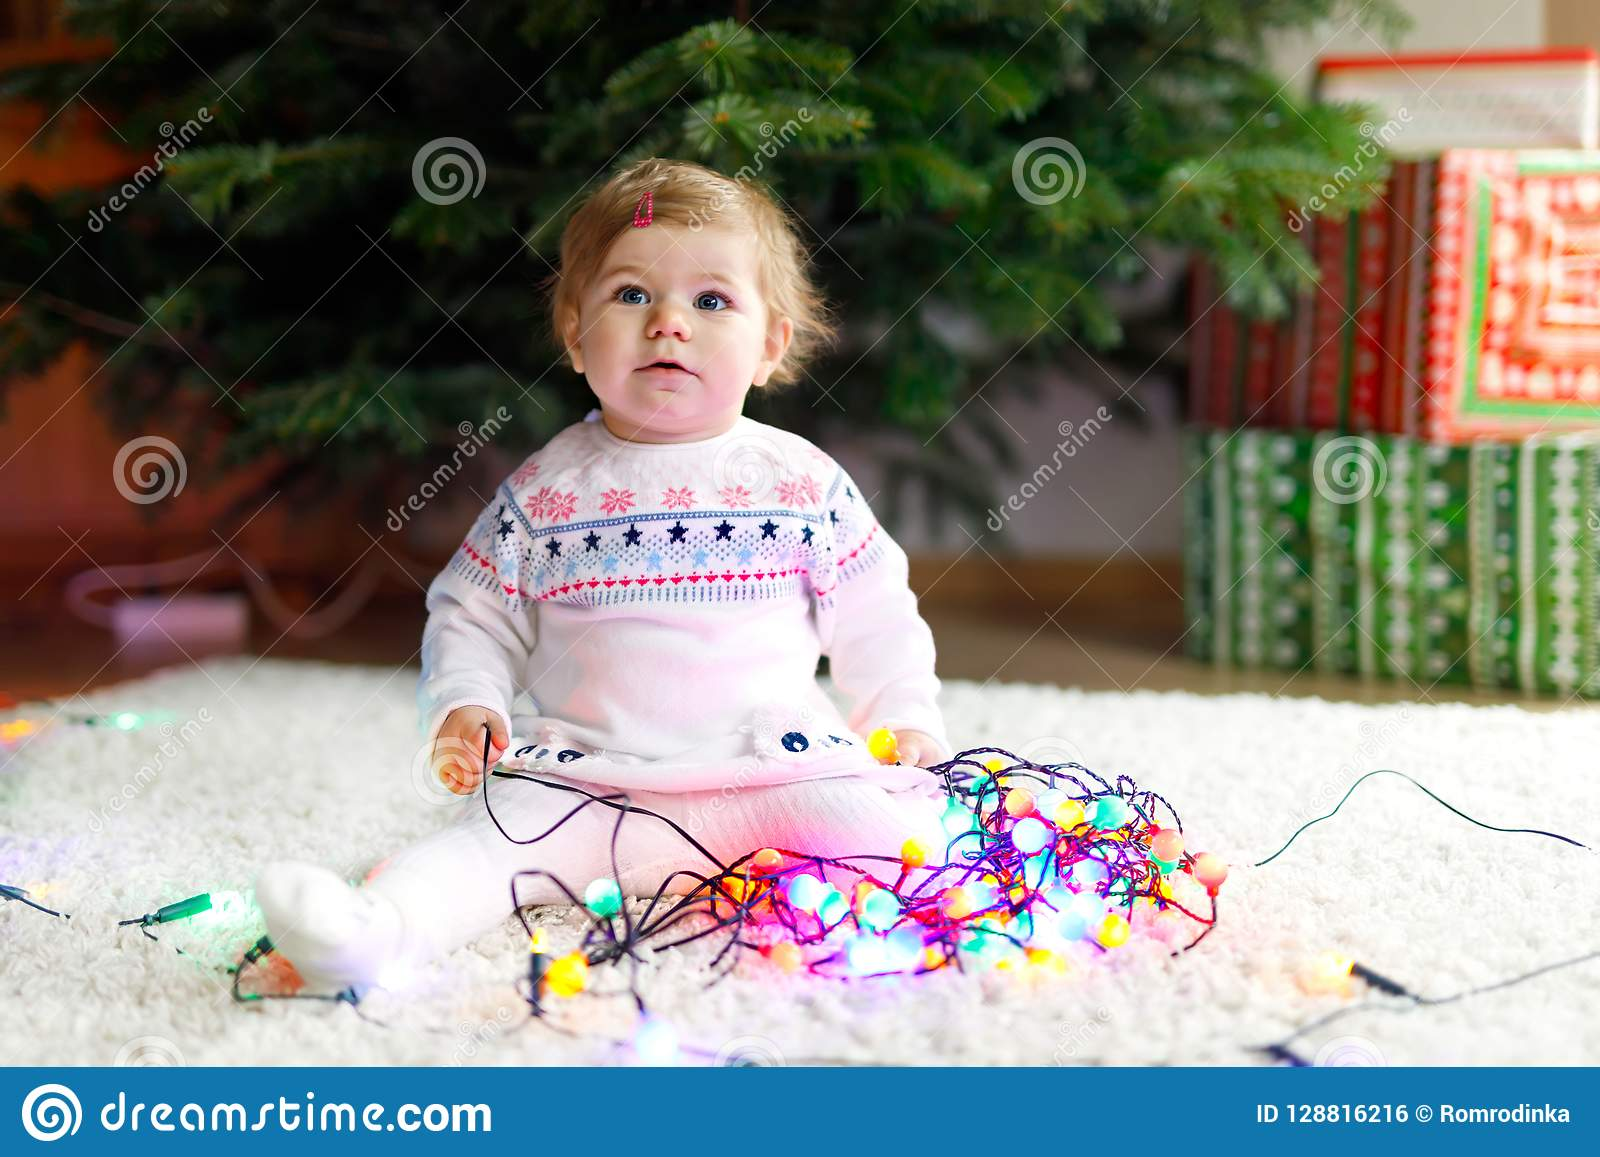 91c4d04bdb37 Adorable baby girl holding colorful lights garland in cute hands. Little  child in festive clothes decorating Christmas tree with family.